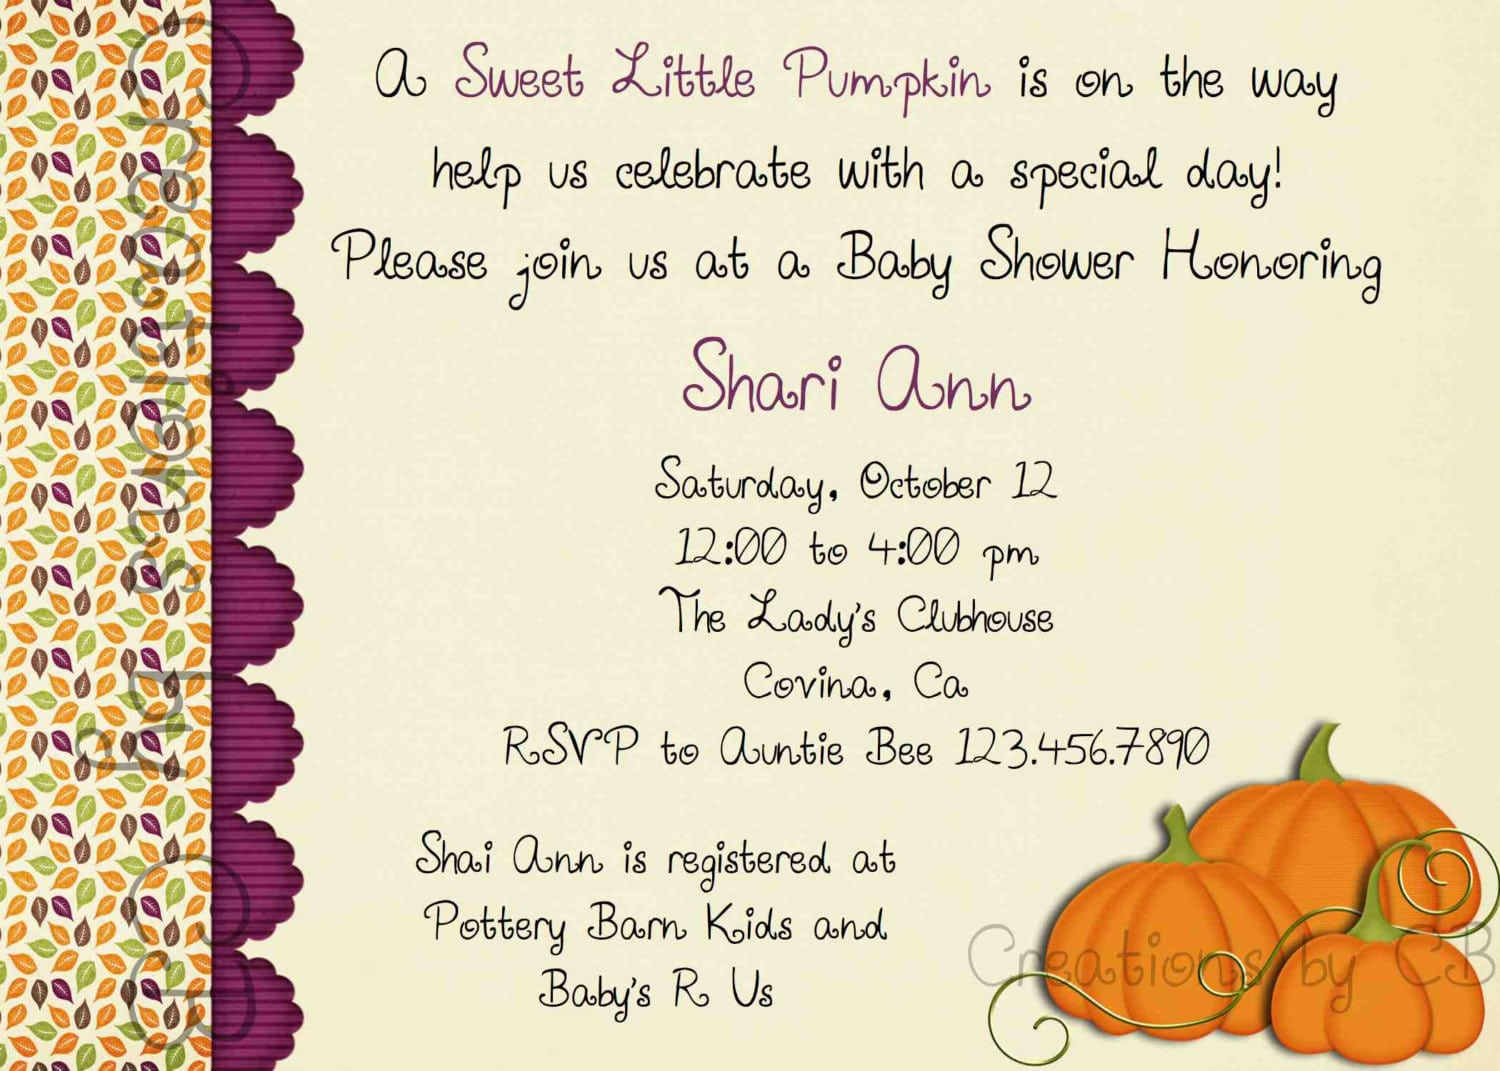 Potluck Party Invitations Templates Life Style By Modernstorkcom - Thanksgiving party invitation templates